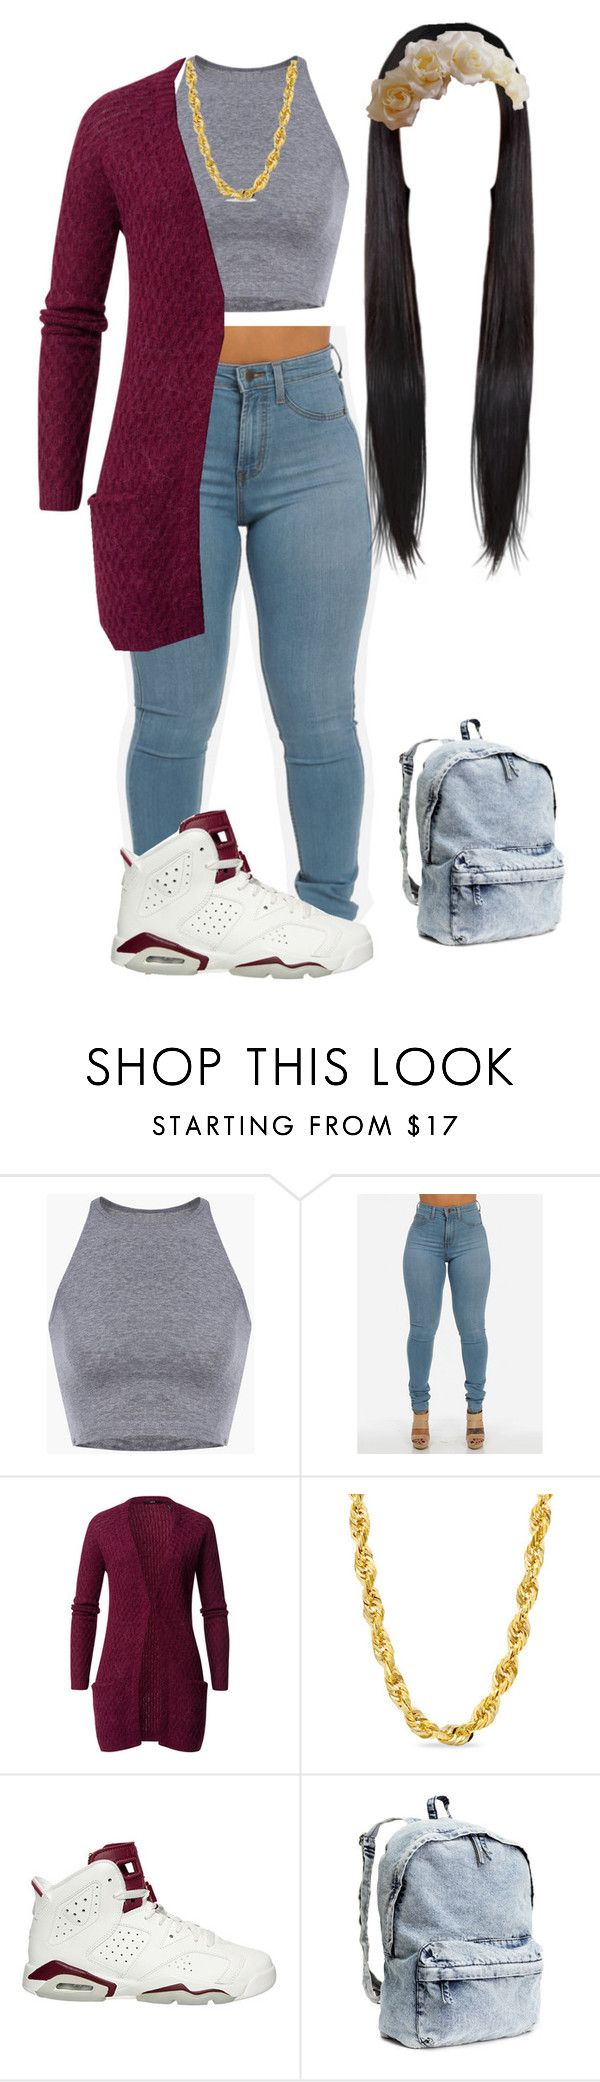 """"" by justnaa ❤ liked on Polyvore featuring moda, Zales e H&M"